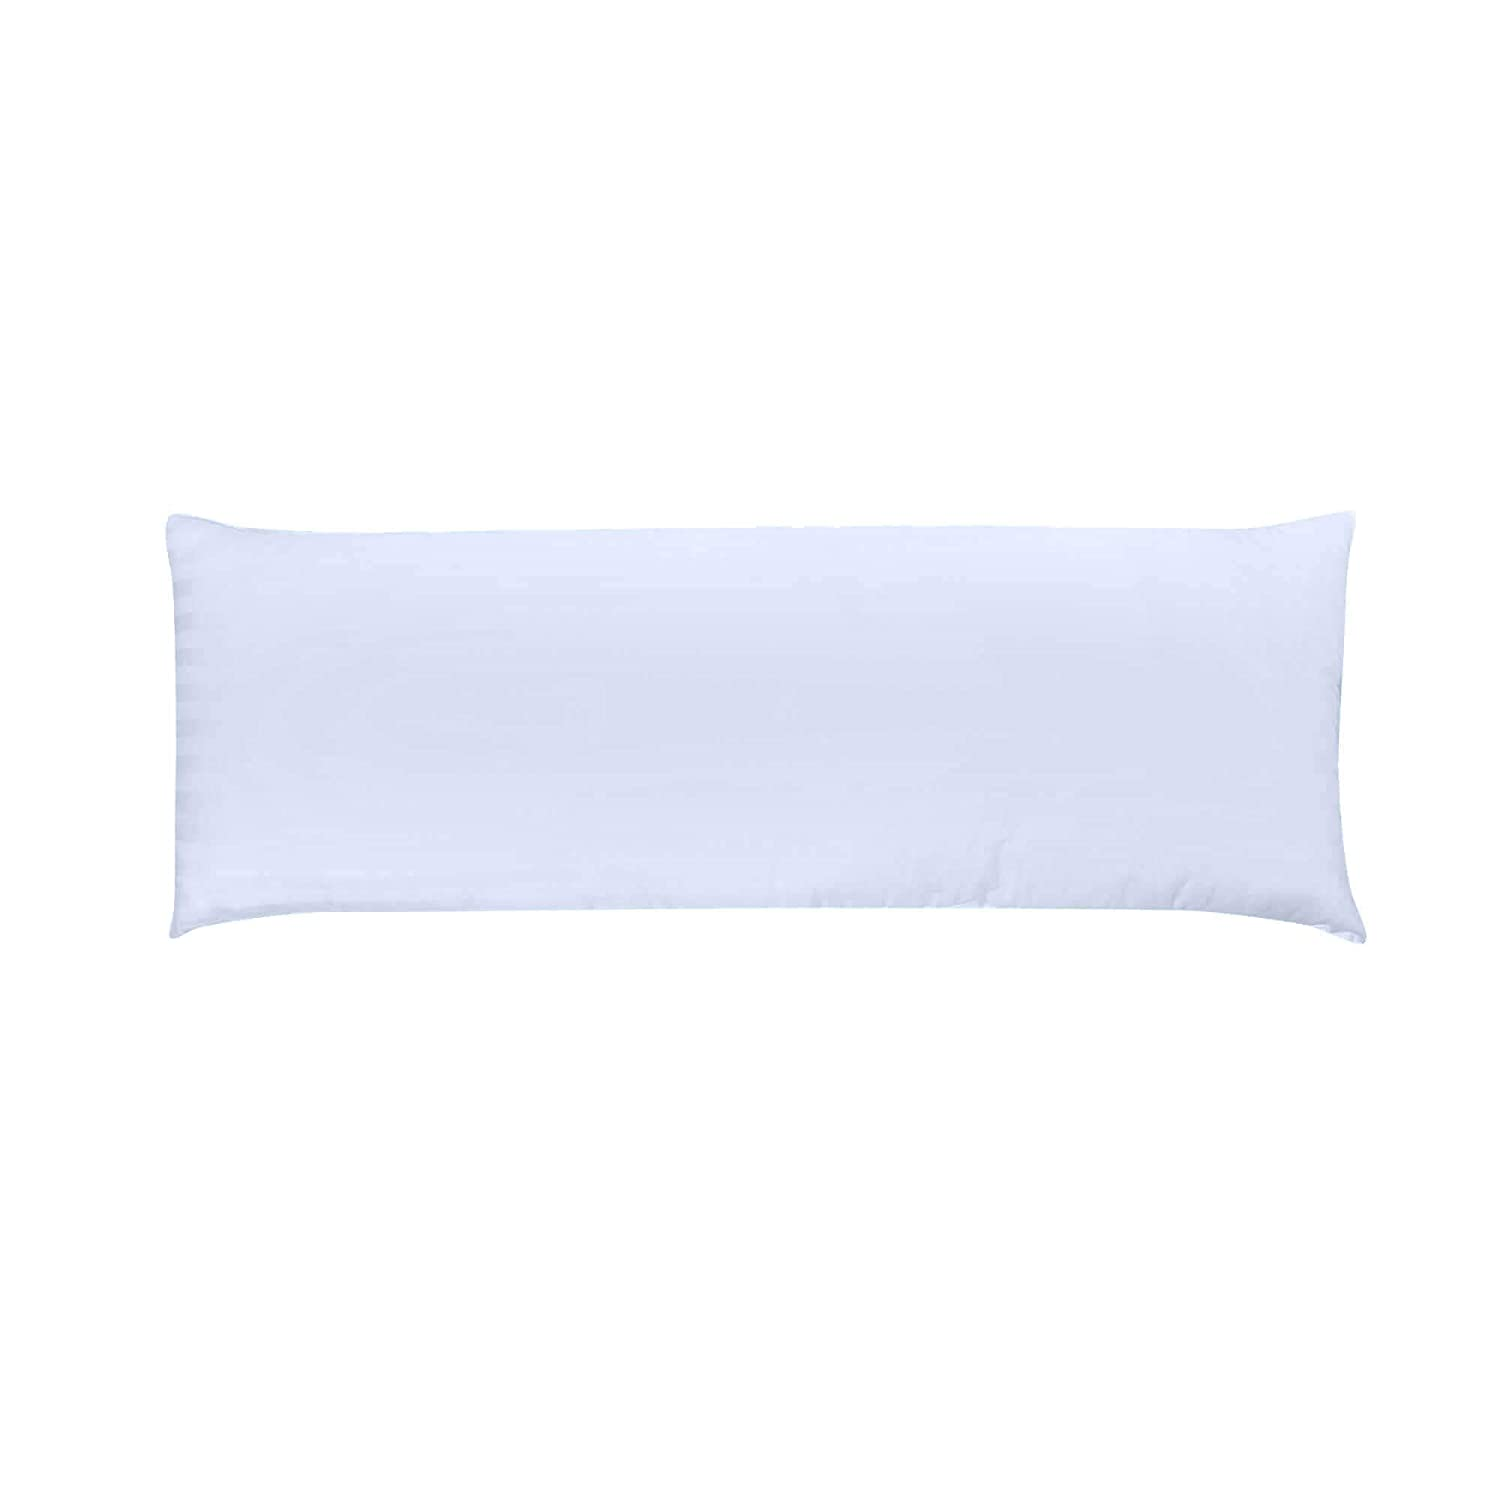 140 x 35cm Neck /& Back Pain Includes Complimentary Replaceable /& Washable cover Blue Full Body Bolster Support Pillow Best Orthopedic Multi Purpose Pillow for Pregnancy Recovery Support